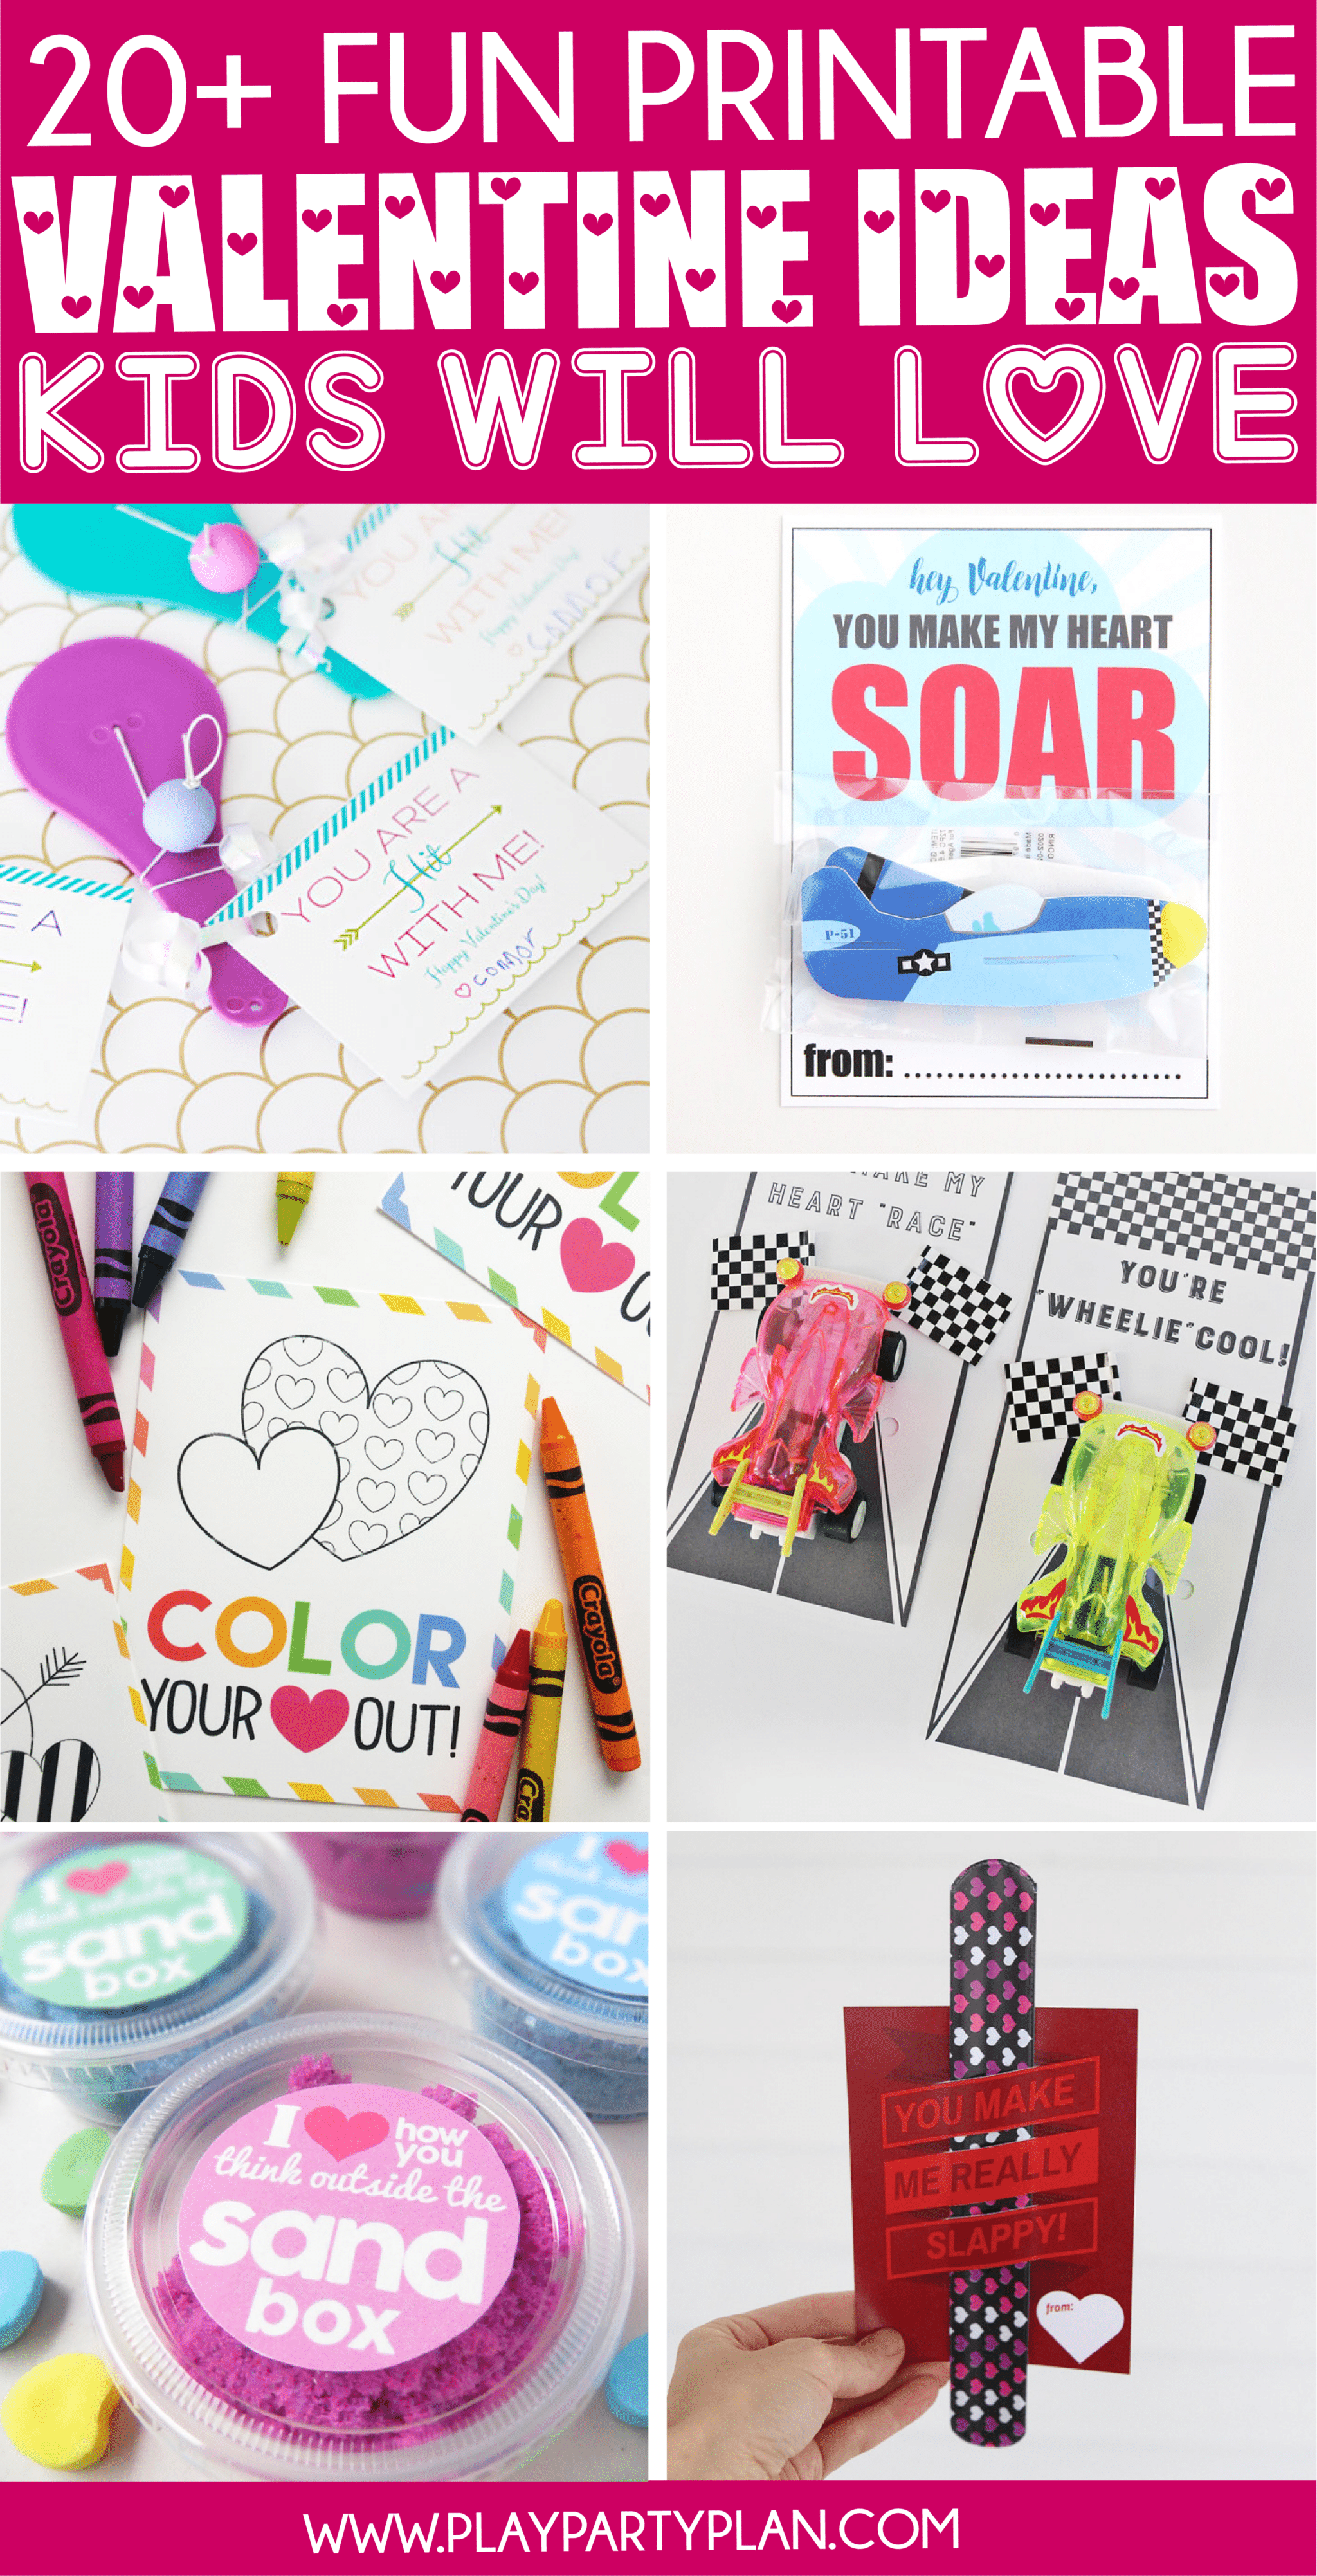 photo relating to Printable Valentines Day Cards for Kids named 20+ Enjoyment Valentines Working day Playing cards for Youngsters - Enjoy Get together System